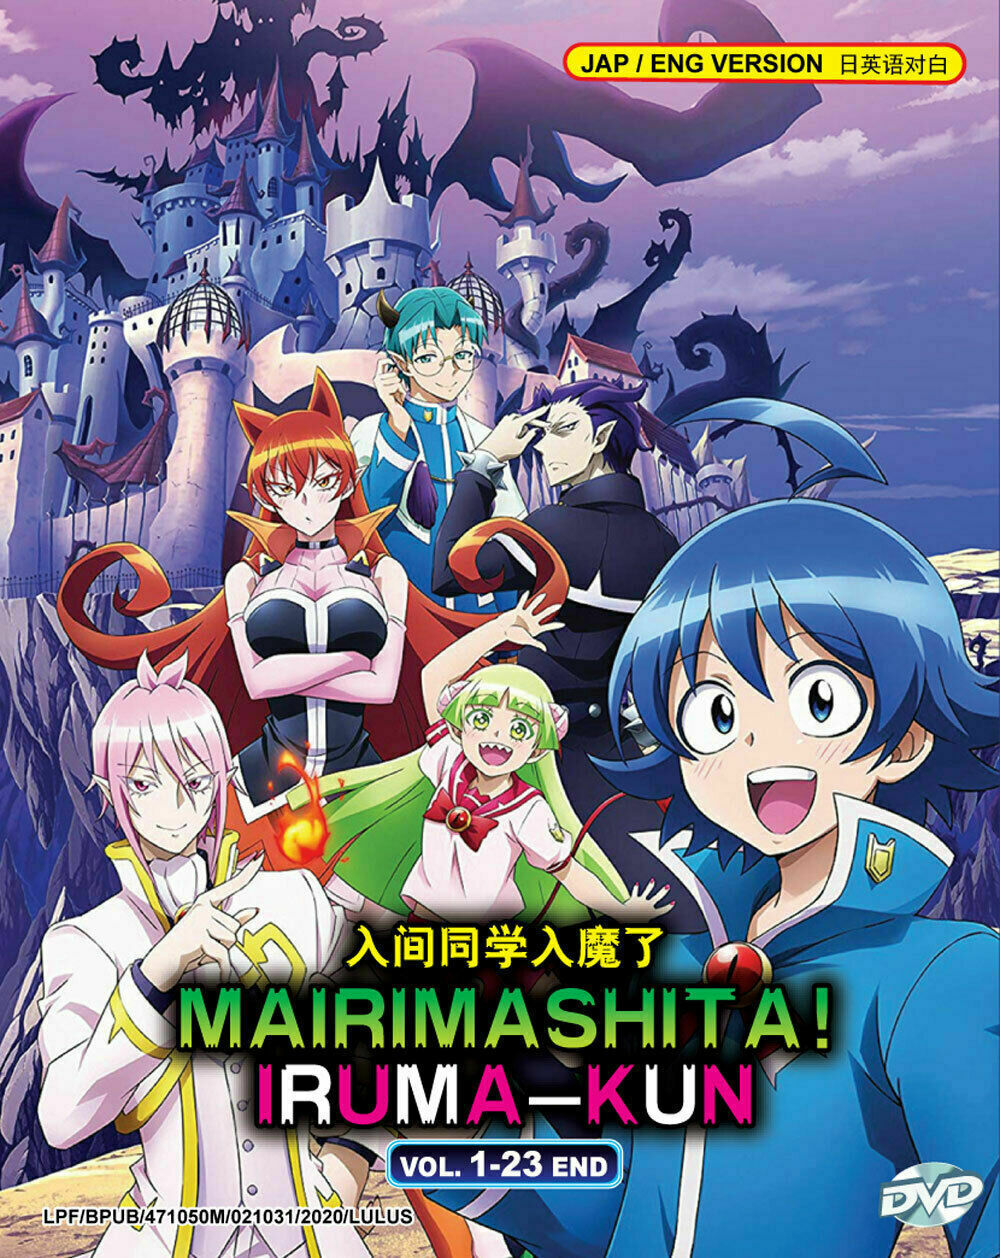 Mairimashita! Iruma-kun DVD (Vol.1-23 end) with English Dubbed Ship From USA